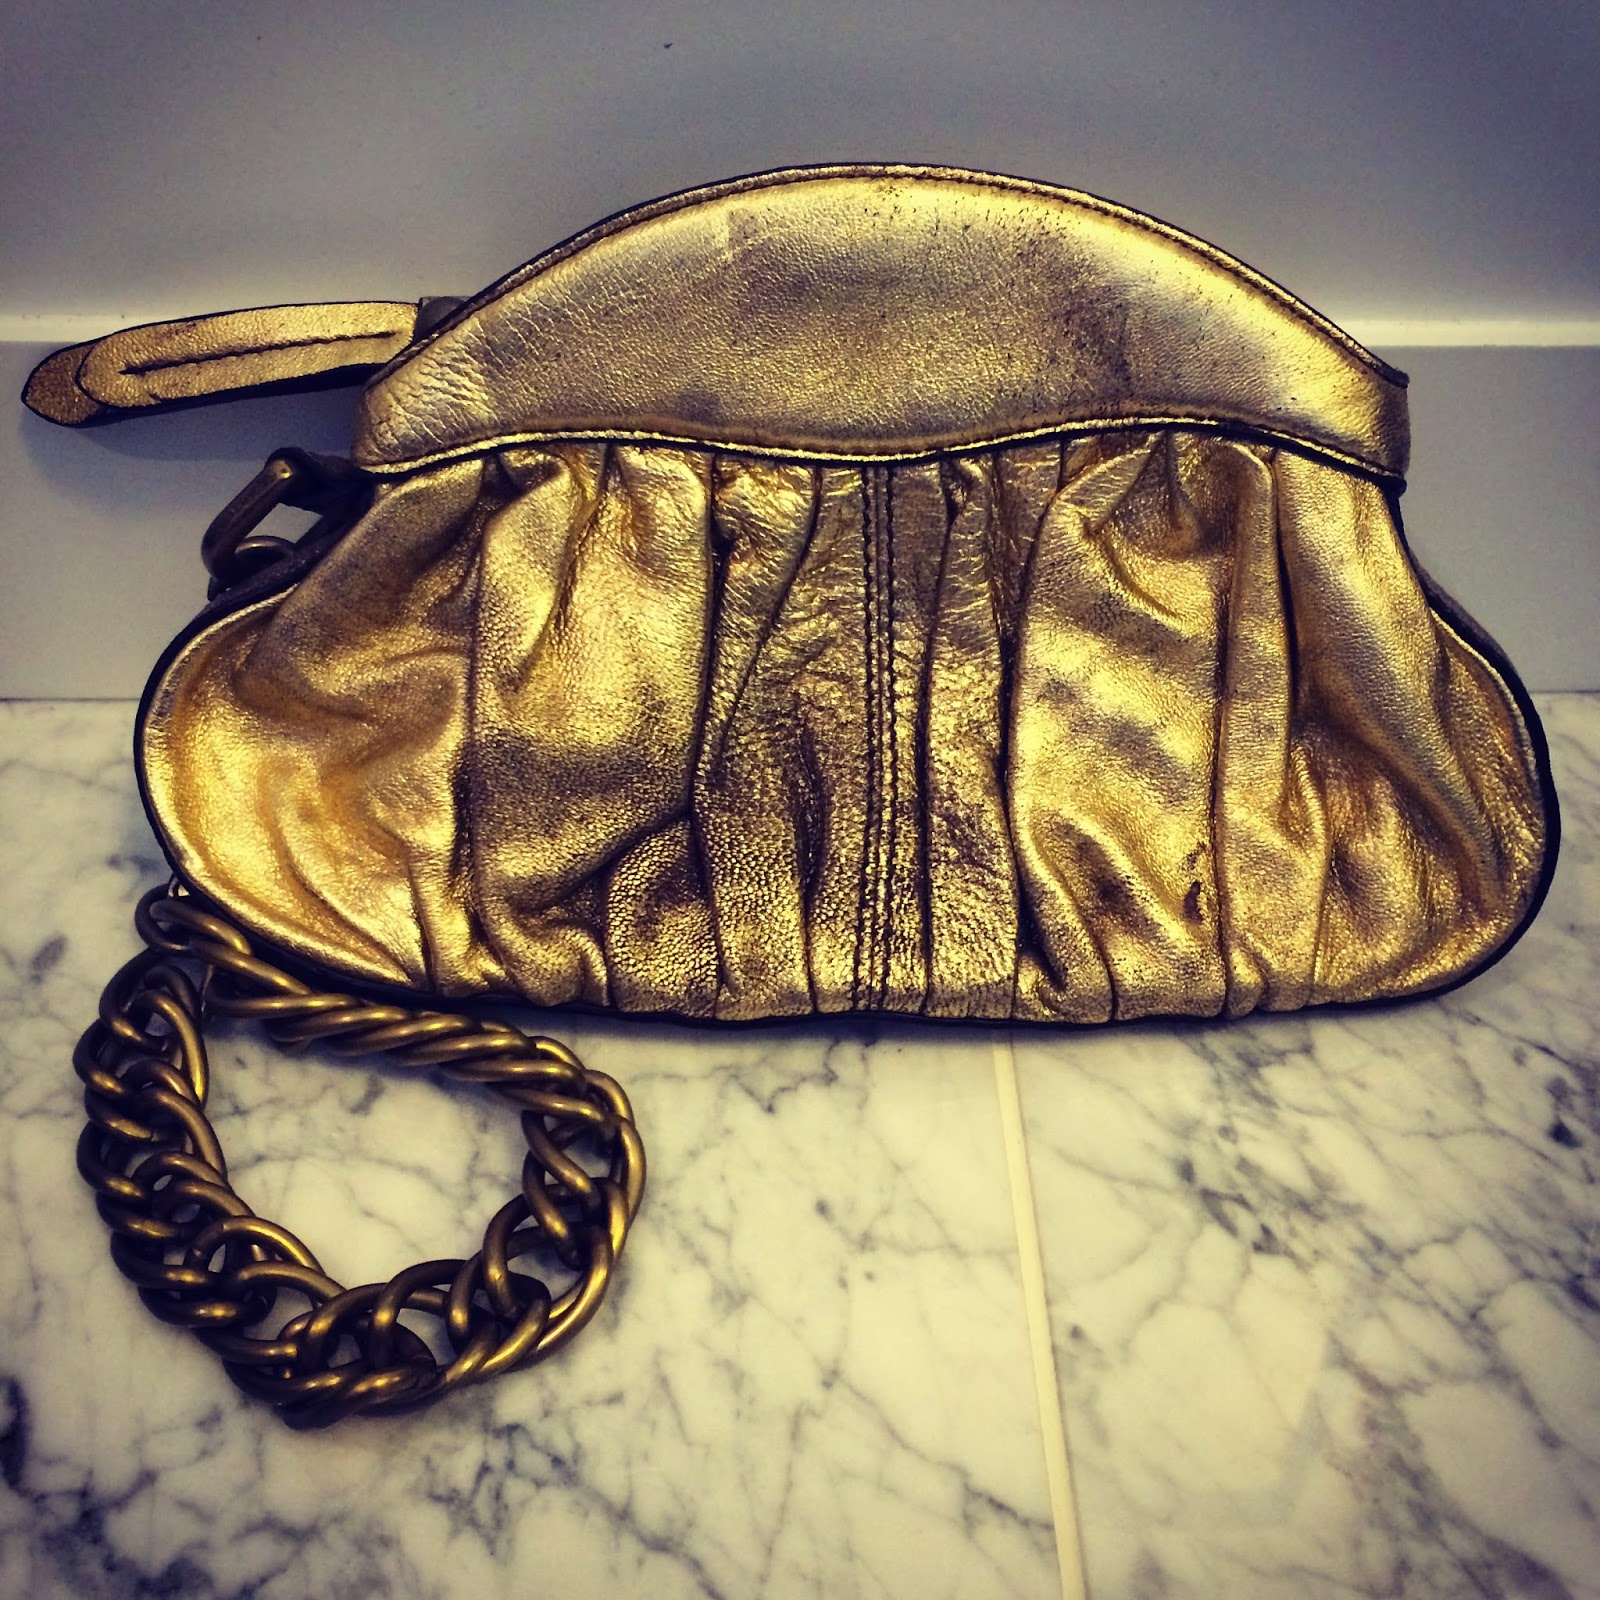 Linea Pelle Gillian Gold Clutch from Fashion Project